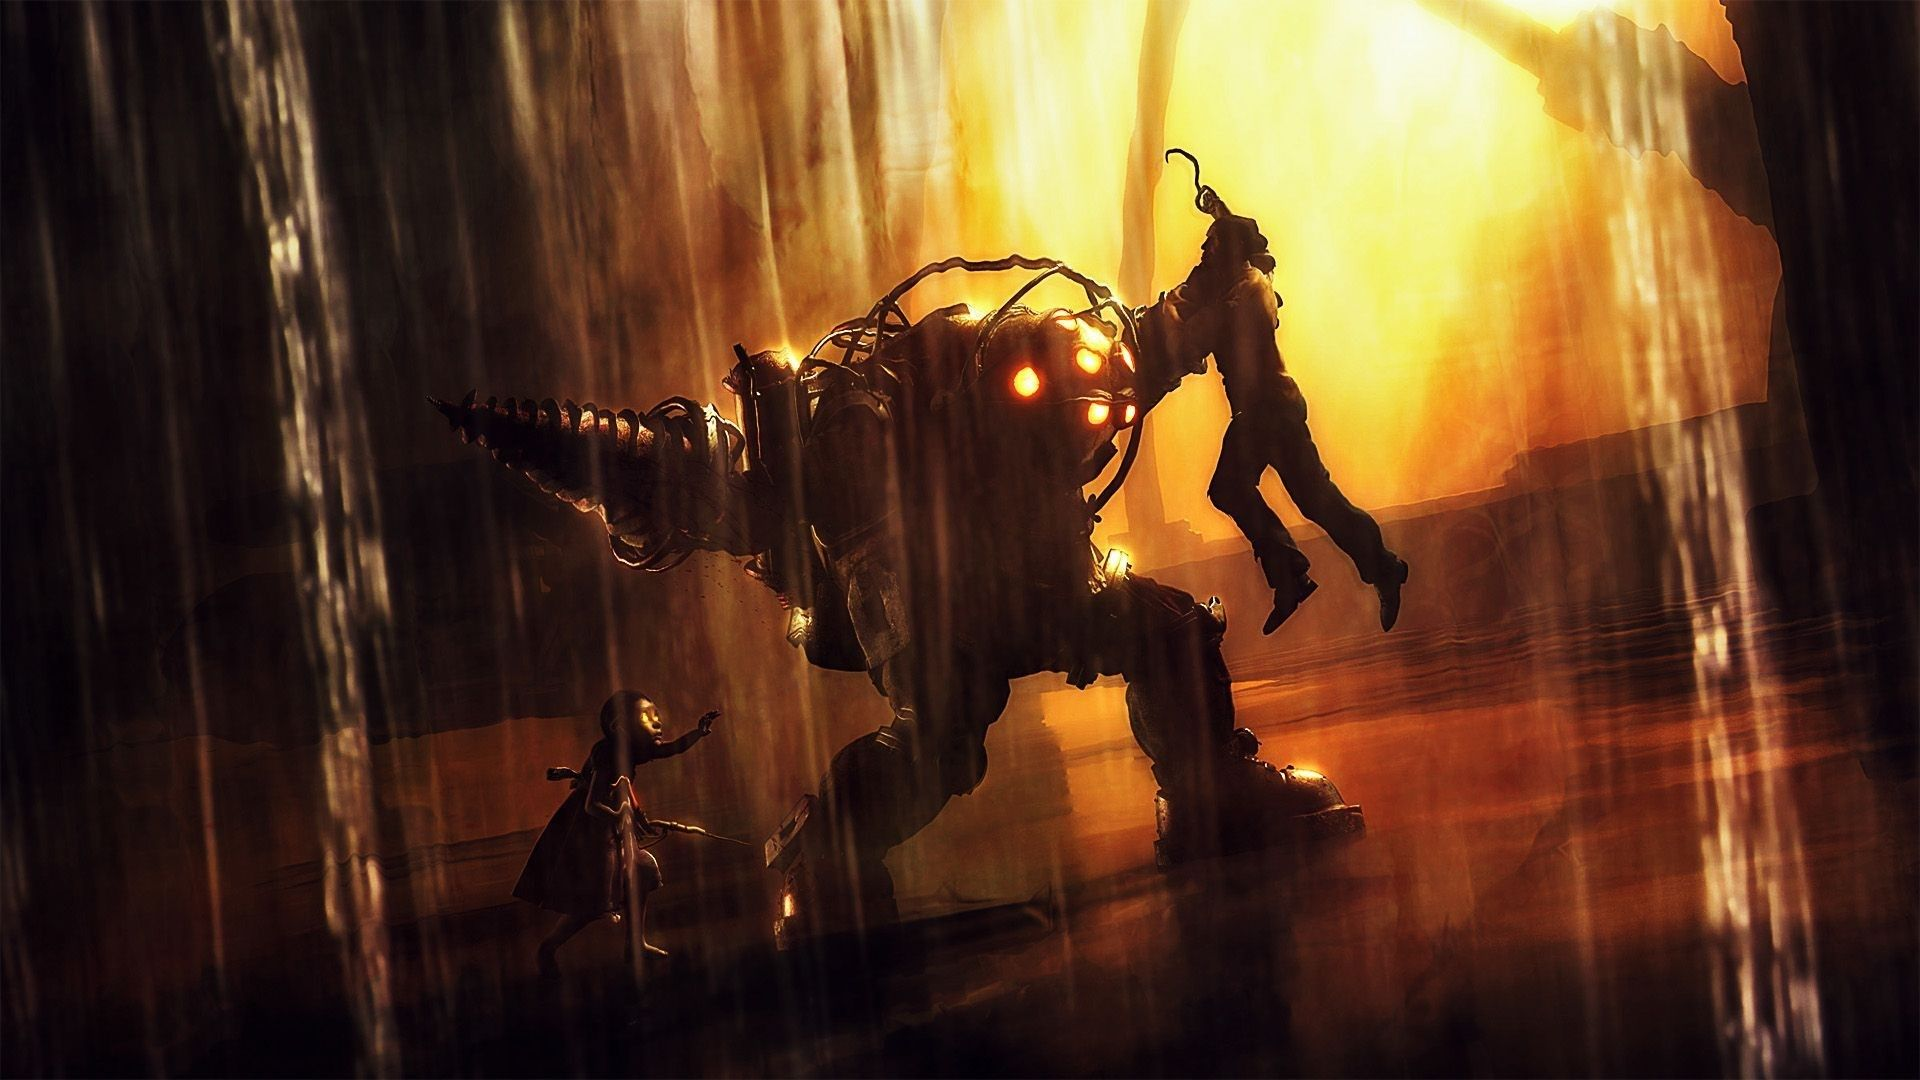 Full HD P Bioshock Wallpapers Desktop Backgrounds Wallpaper